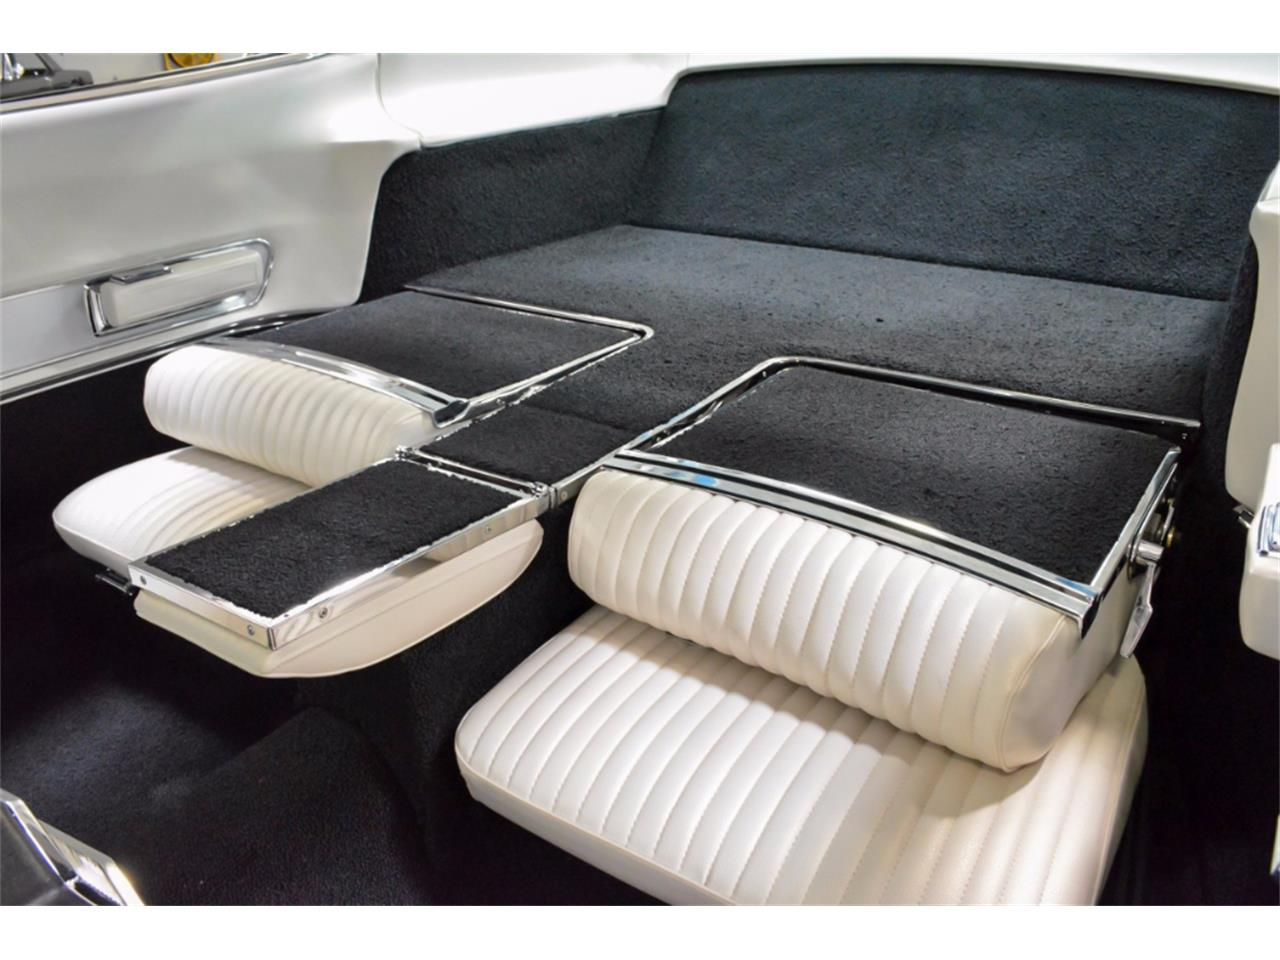 Large Picture of '67 Dodge Charger - $175,000.00 Offered by John Kufleitner's Galleria - LKM1